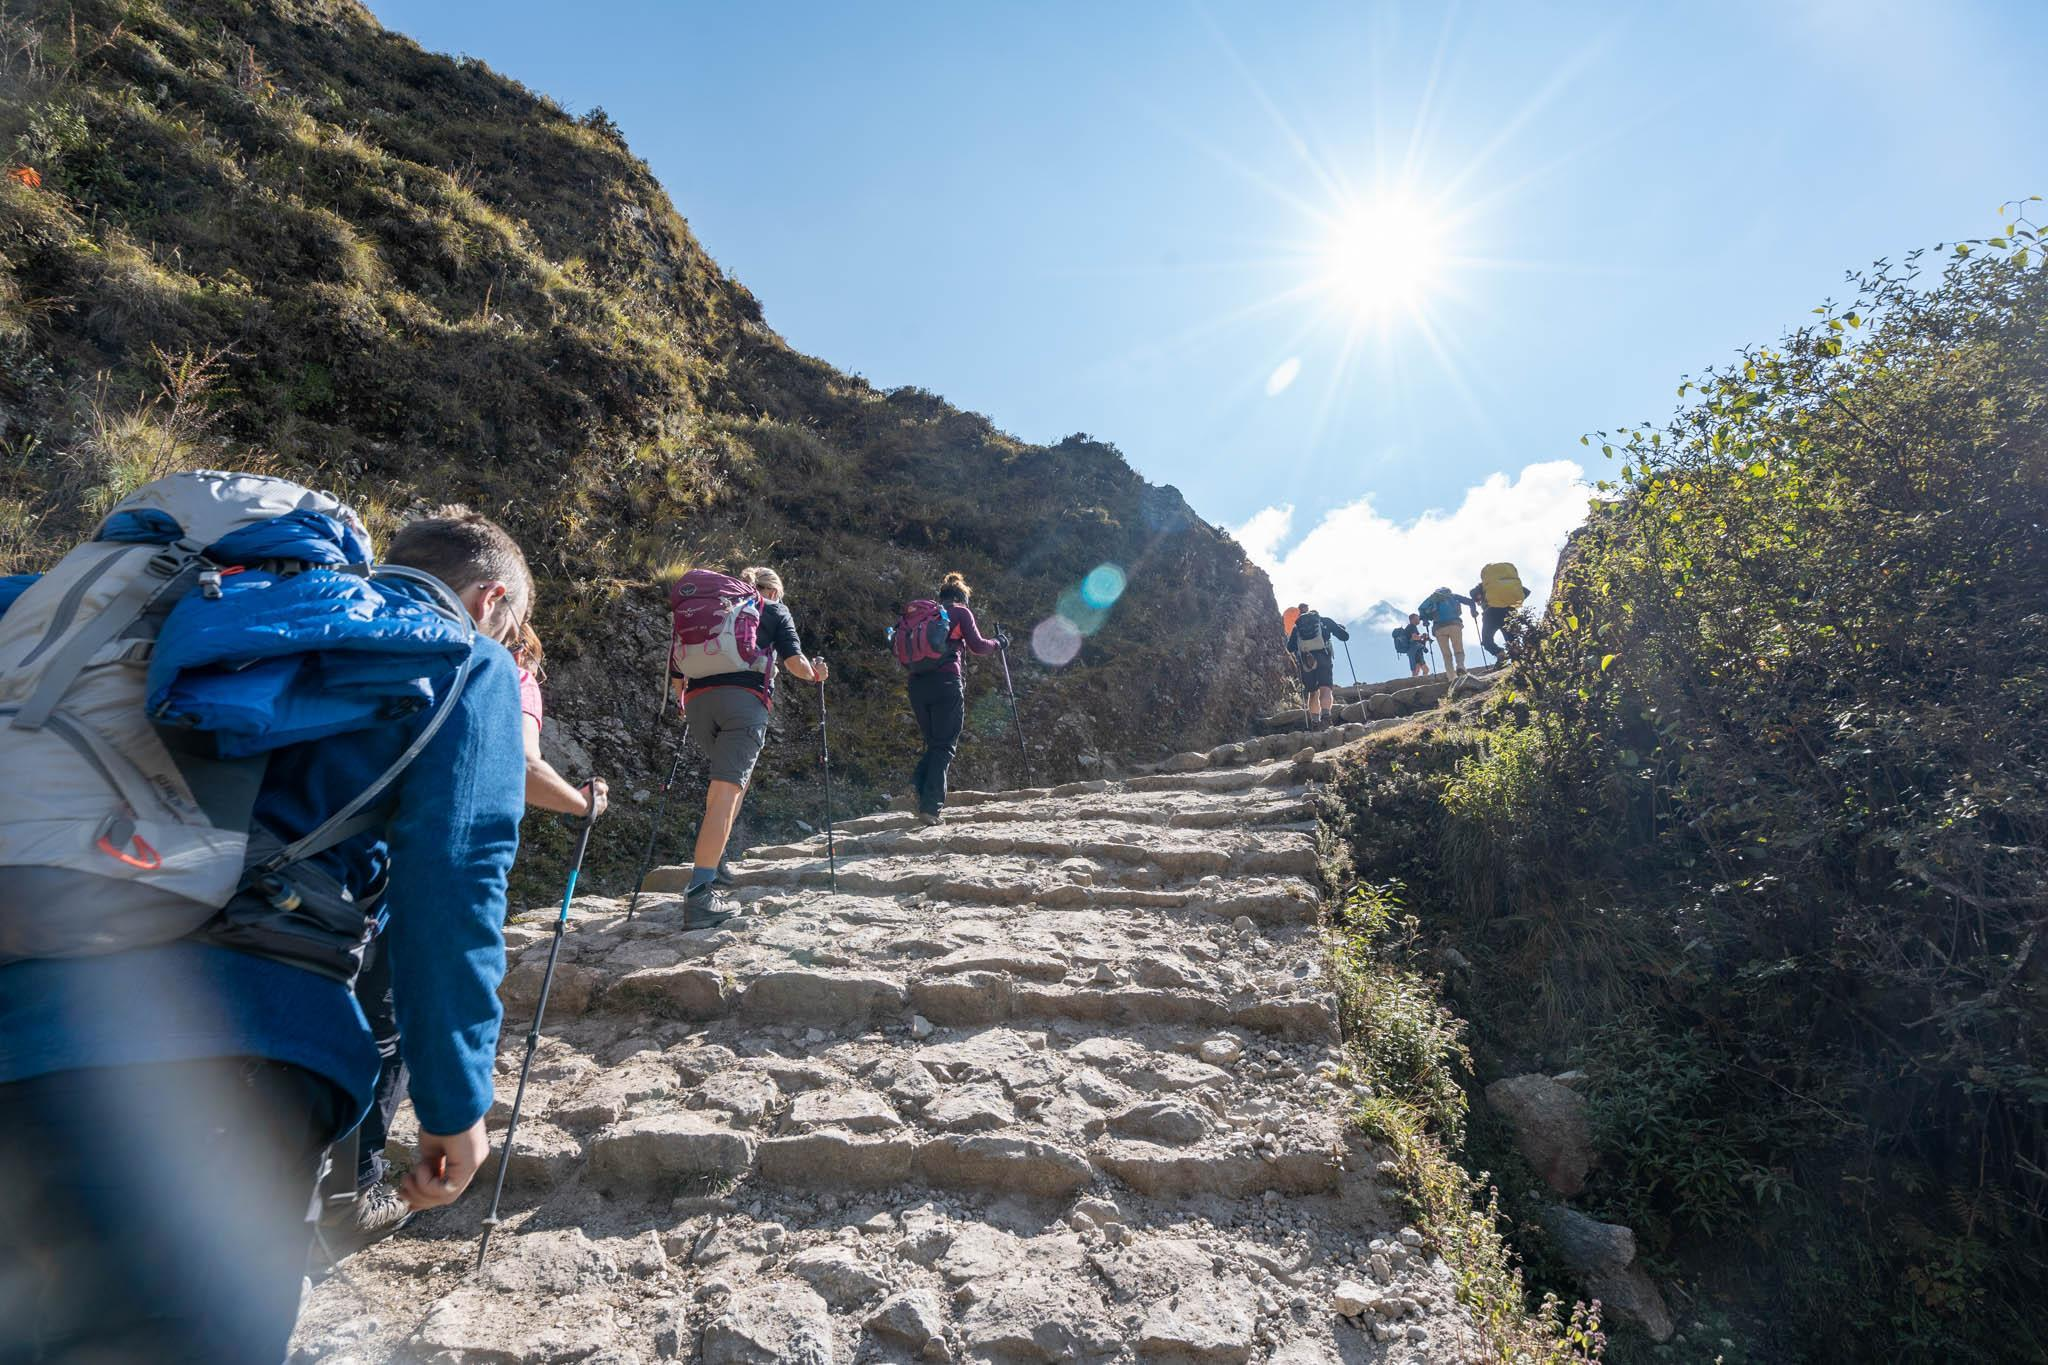 A group of trekkers climbing up a trail on the Everest Base Camp journey